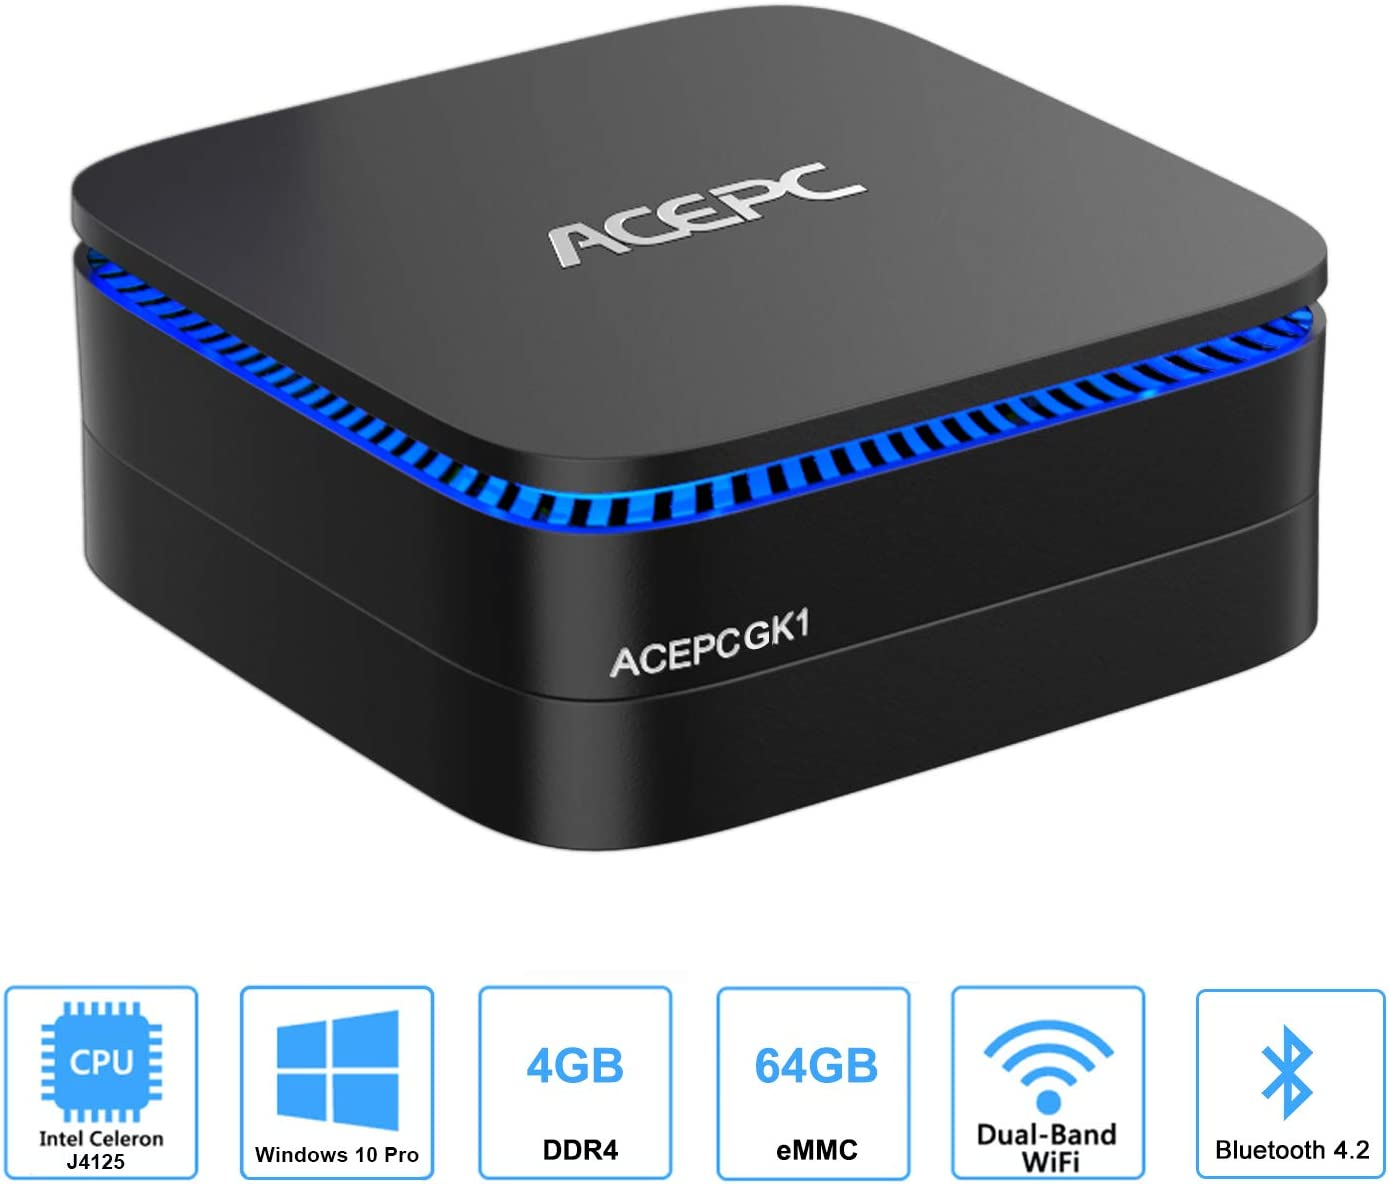 Mini PC, GK1 Plus Mini Computer Intel Gemini Lake Celeron J4125 Windows 10 Pro(64 bit) Desktop Computer,4K@60fps,4GB DDR4/64GB, Dual Wi-Fi, Gigabit Ethernet, Bluetooth 4.2[Upgraded]